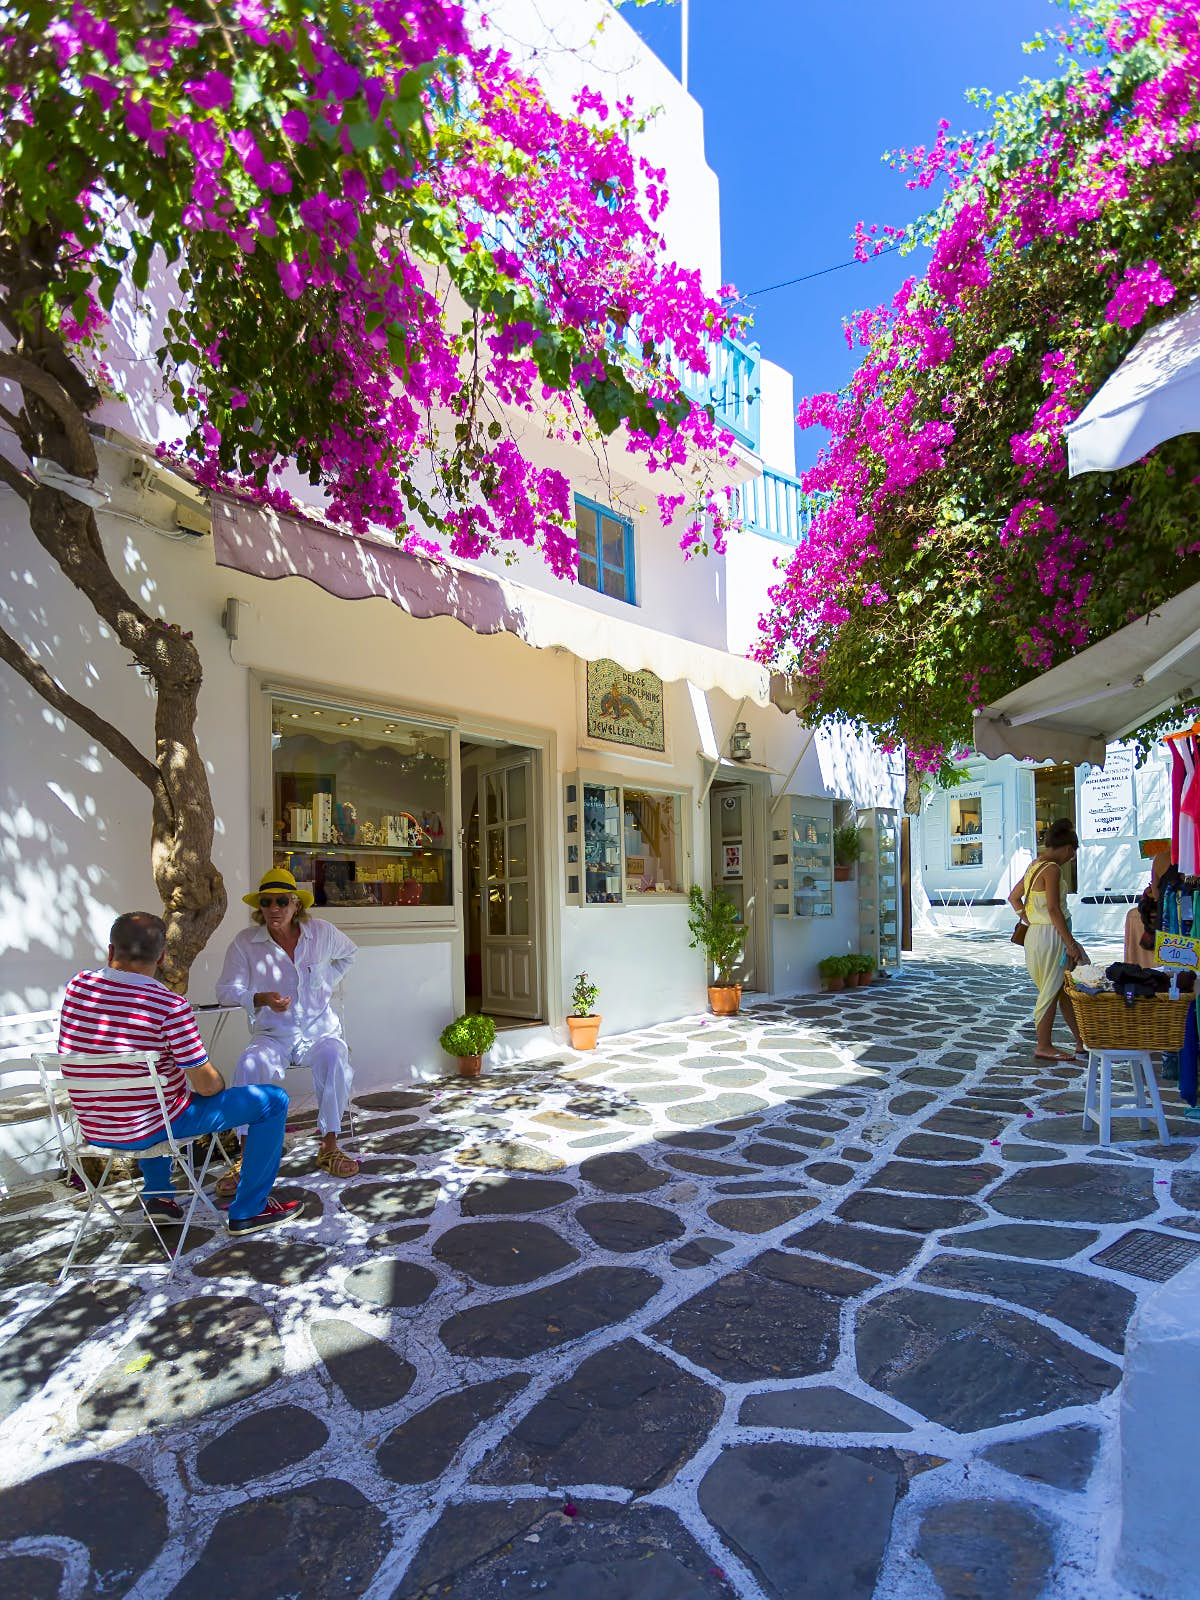 Photo of a small winding stone-paved street lined with purple bougainvillea, shop fronts and small cafes. There are seats outside some of the cafes with people sitting and talking. The sky is completely clear and blue.